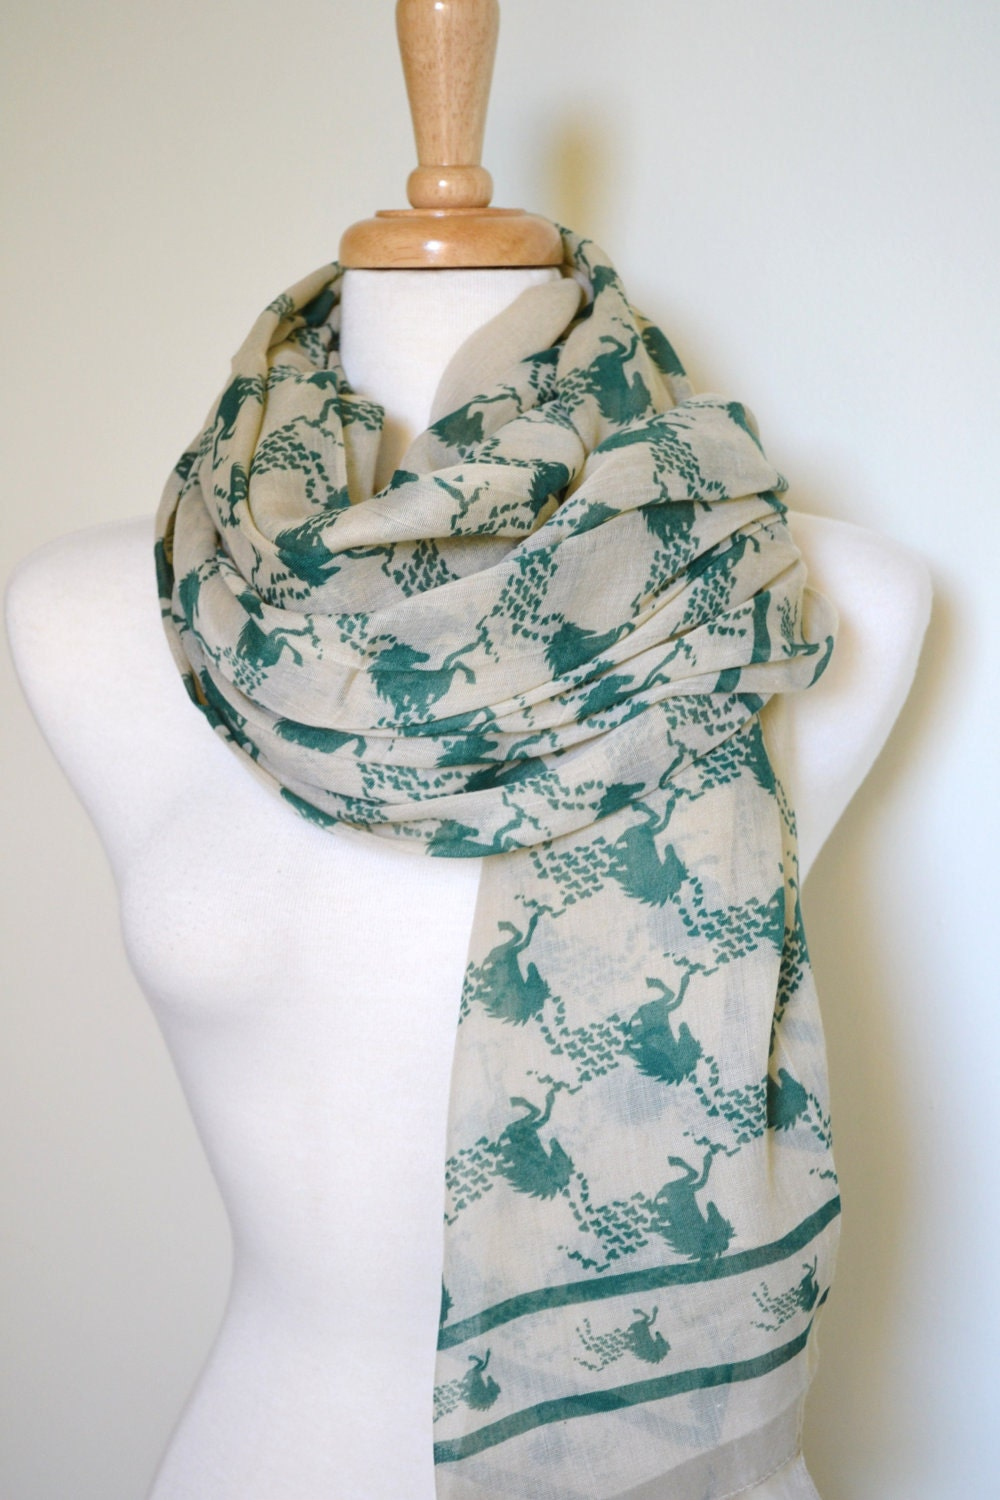 Scarf with images of green horses